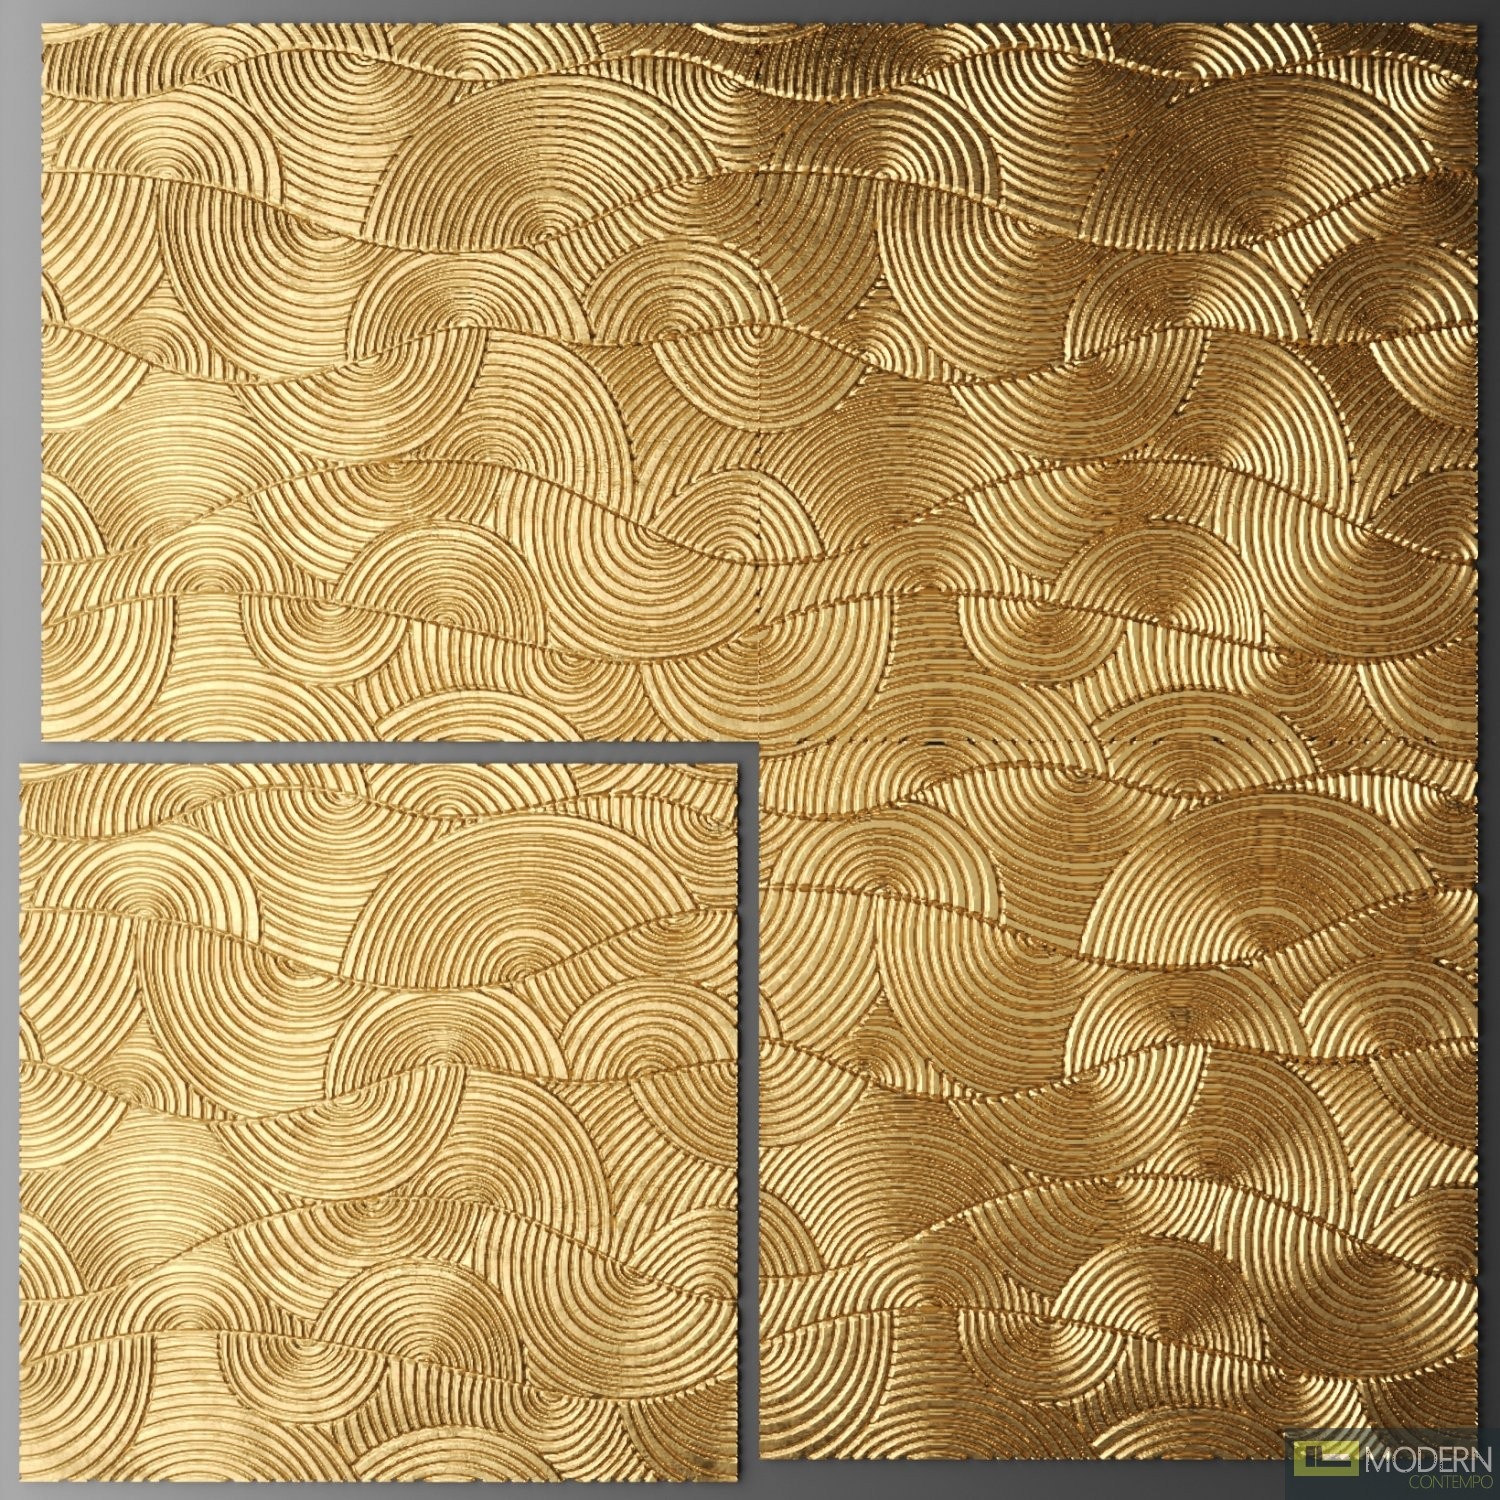 3D SURFACE WALL PANEL GOLD SERIES TSGS2002